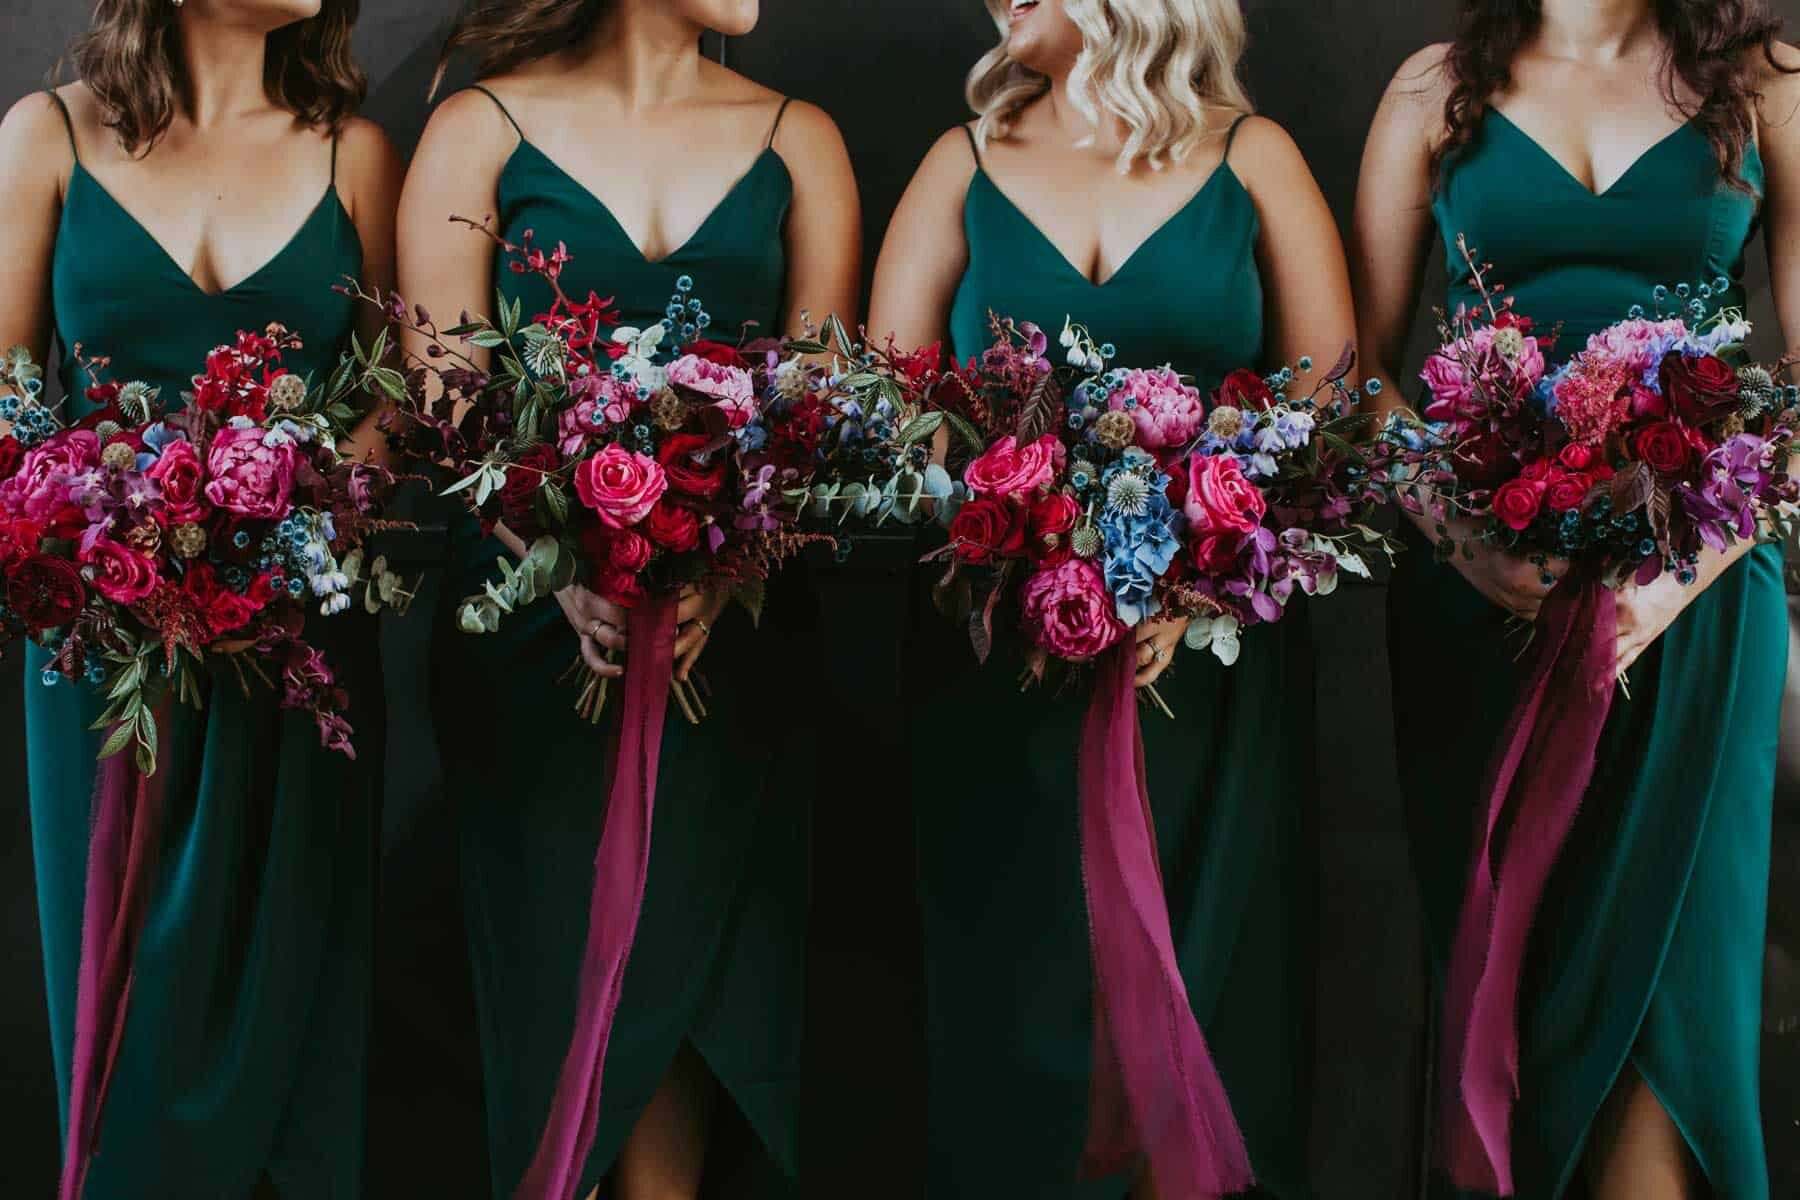 emerald green bridesmaid dresses and pink bouquets